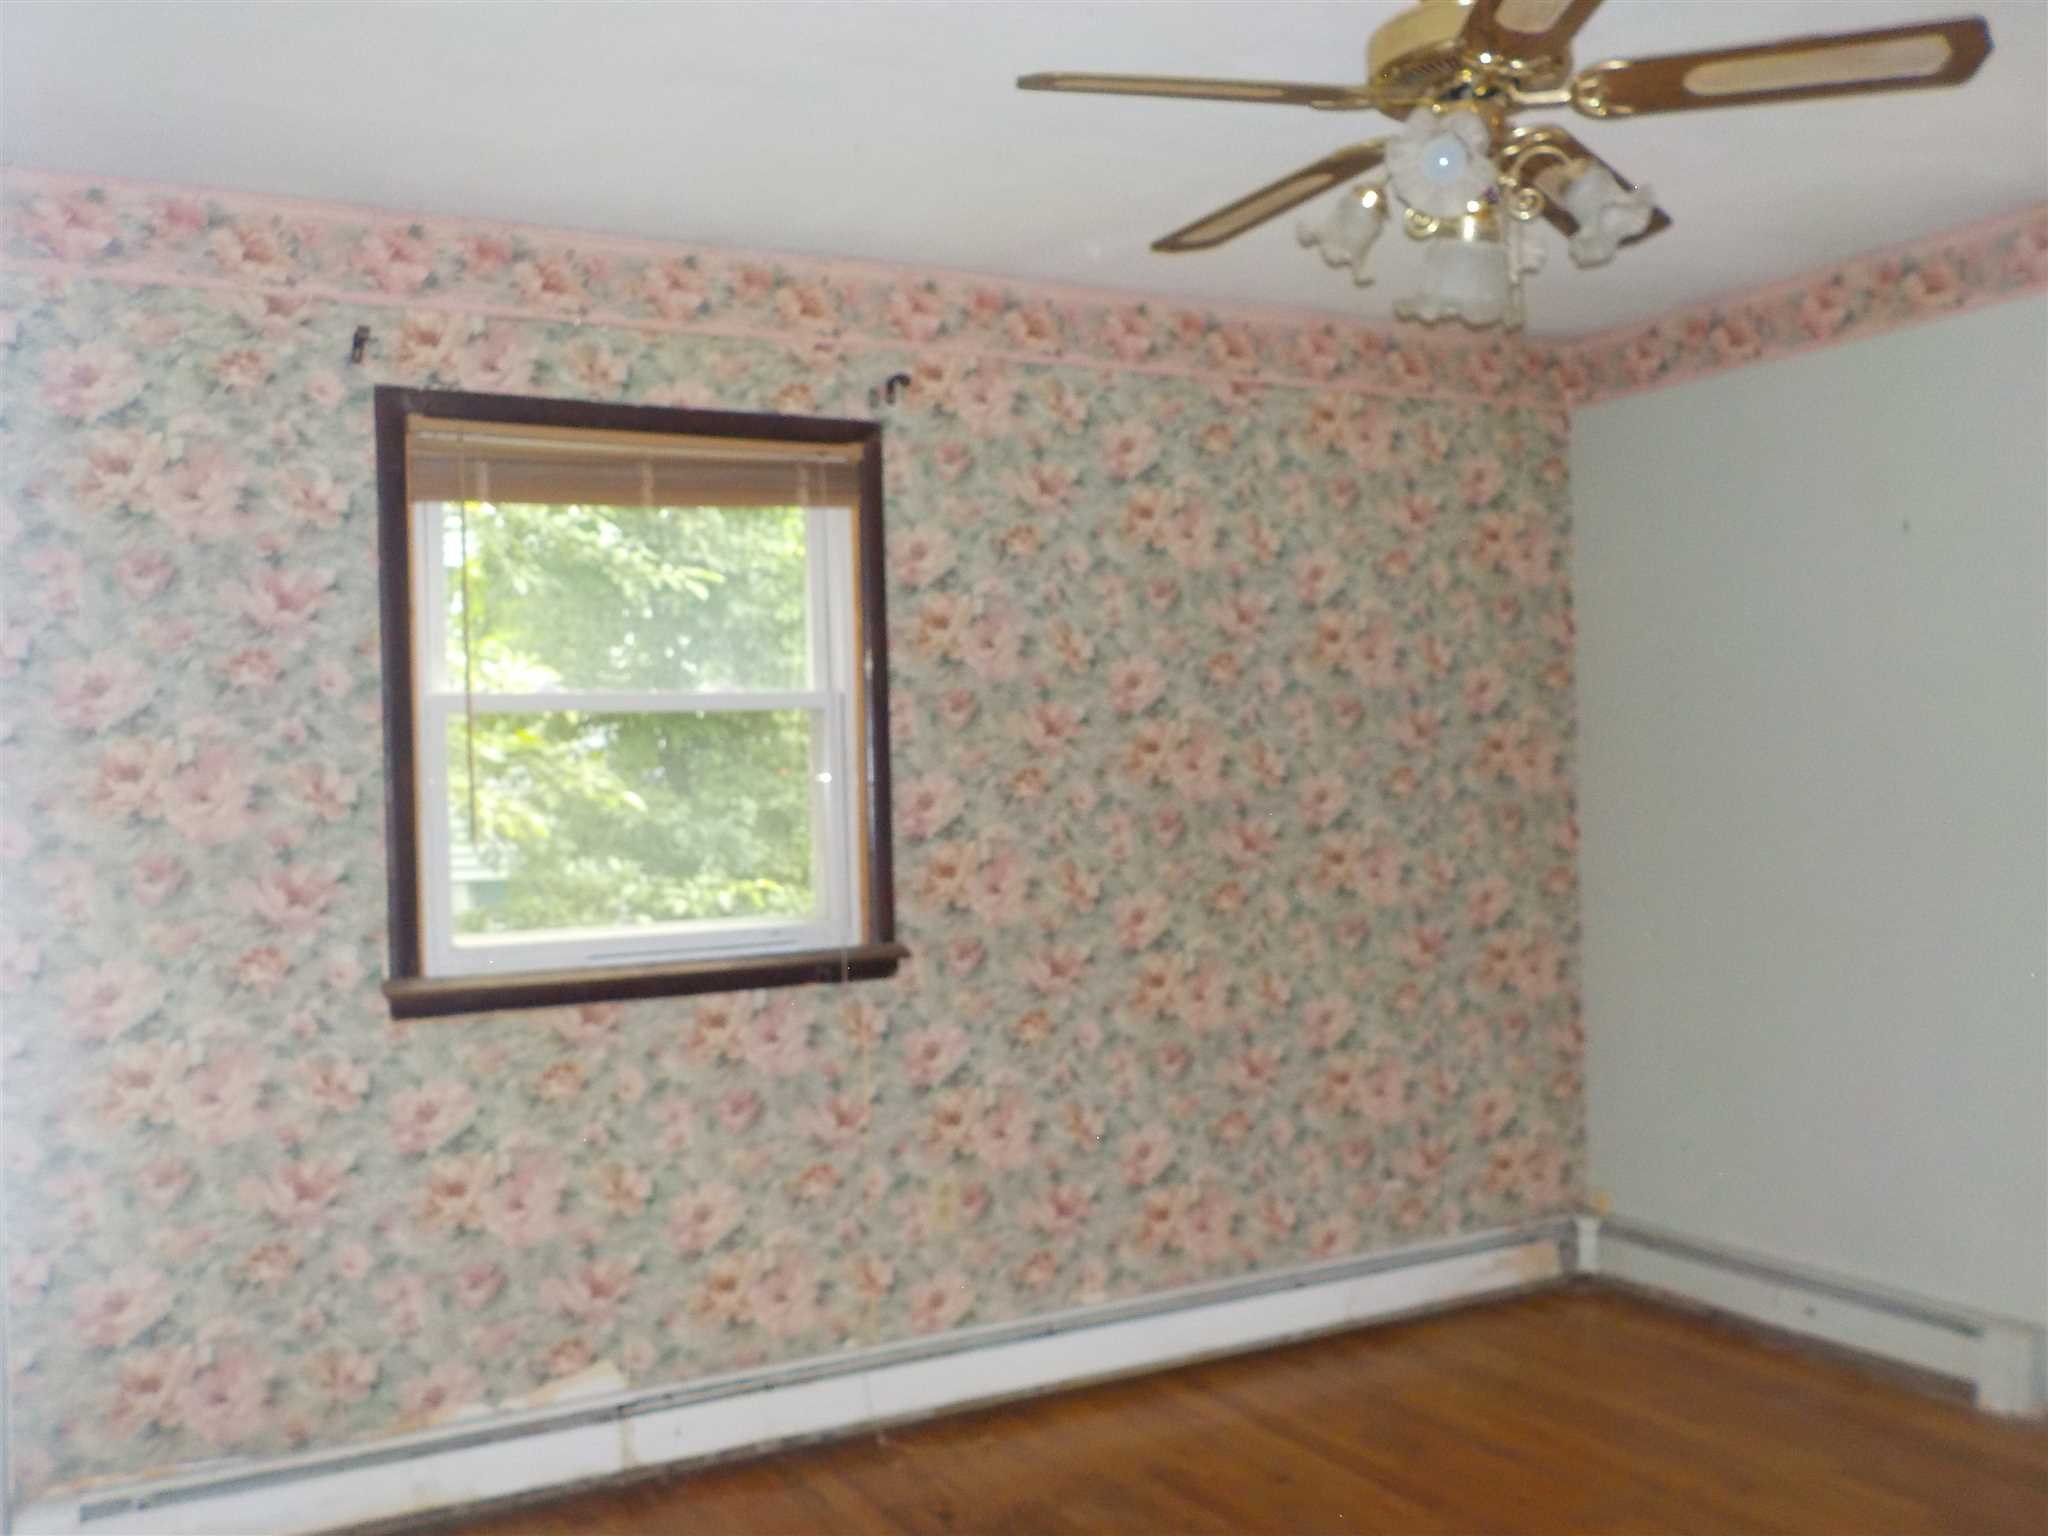 Additional photo for property listing at 7 W. DOGWOOD DRIVE 7 W. DOGWOOD DRIVE Poughkeepsie, New York 12601 United States